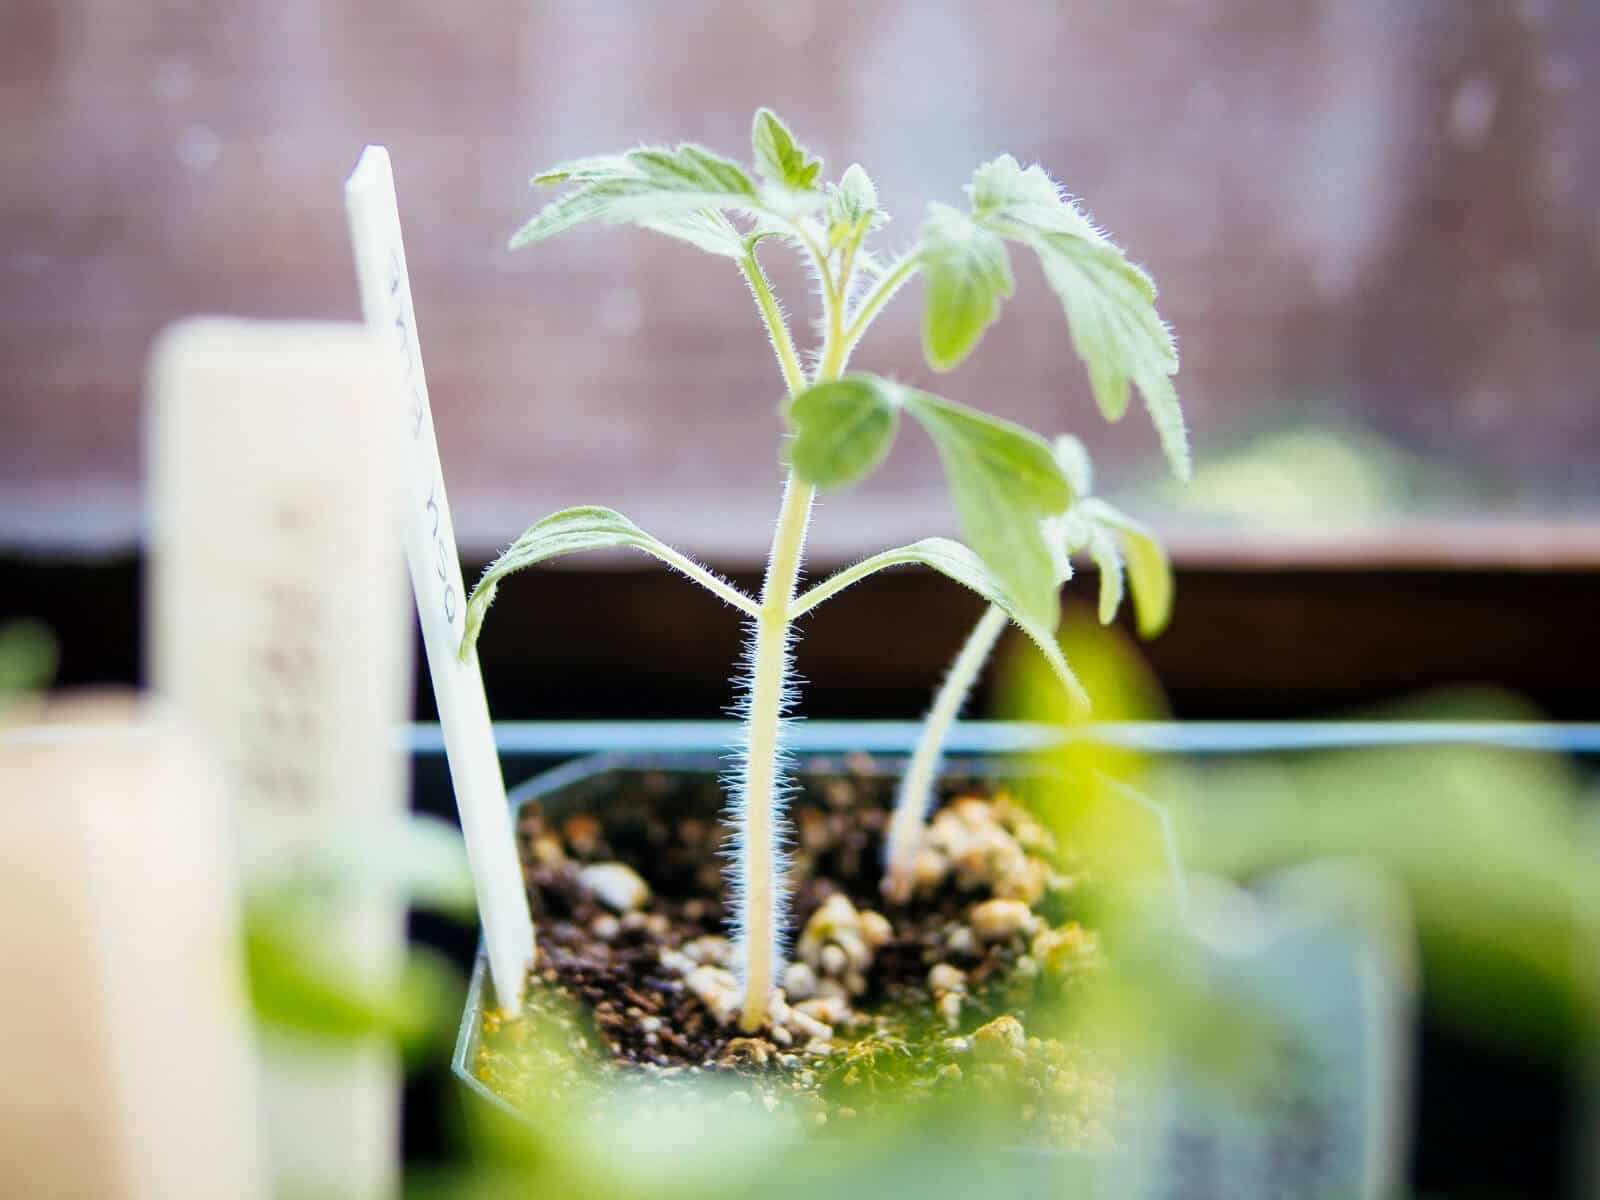 Wait for seedlings to develop their first true leaves before transplanting